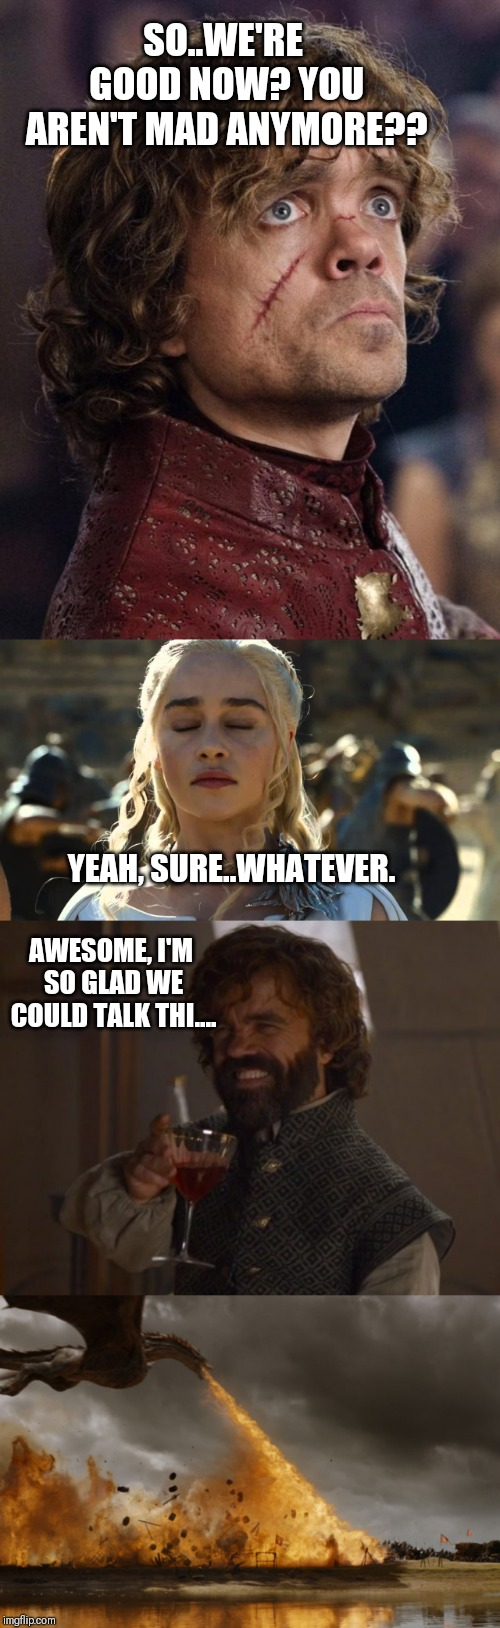 SO..WE'RE GOOD NOW? YOU AREN'T MAD ANYMORE?? YEAH, SURE..WHATEVER. AWESOME, I'M SO GLAD WE COULD TALK THI.... | image tagged in look on your face when game of thrones season ends | made w/ Imgflip meme maker